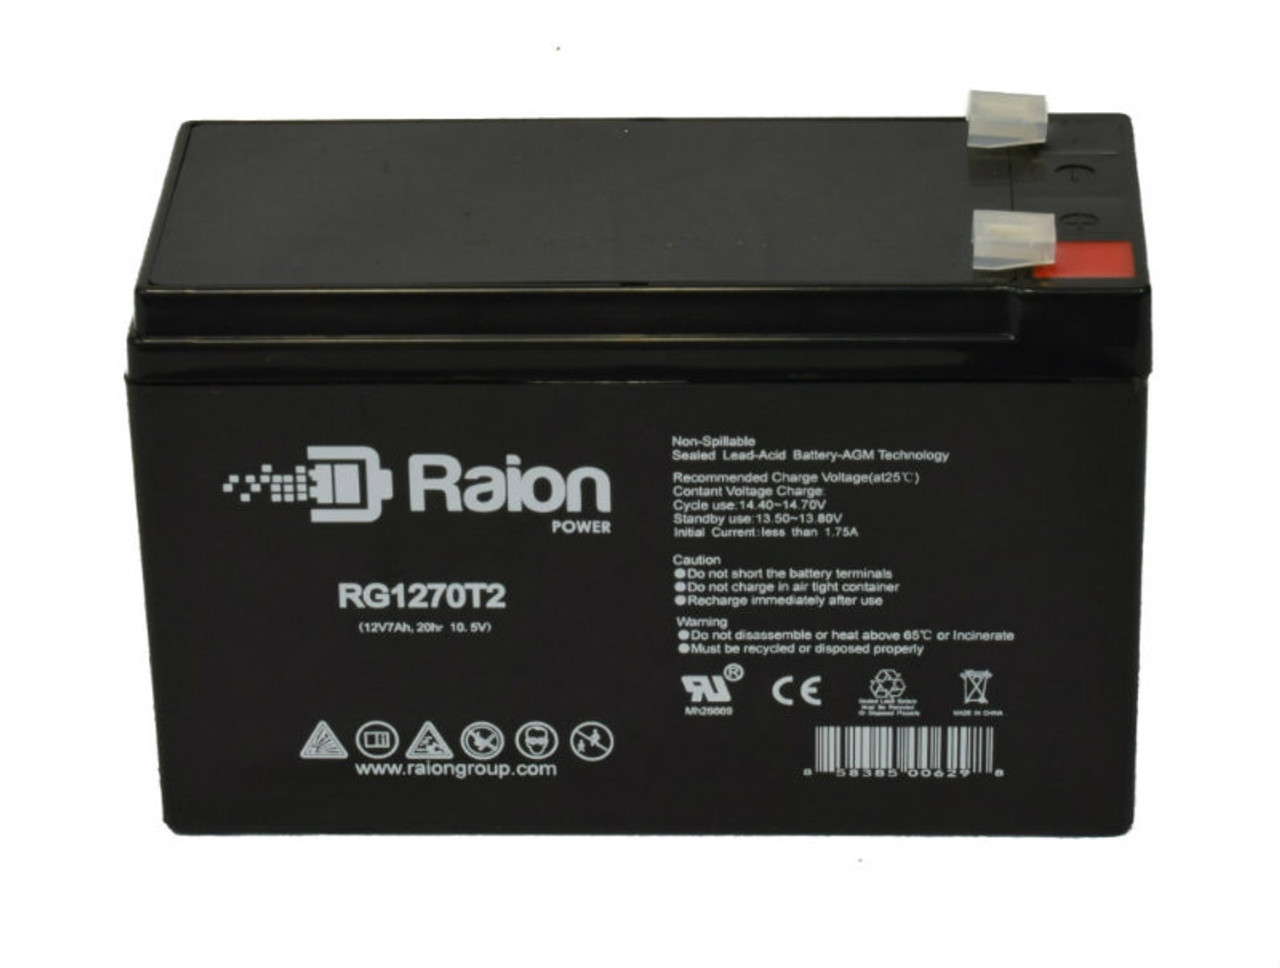 Raion Power 12V 7Ah SLA Battery With T1 Terminals For Long Way LW-6FM7.6J